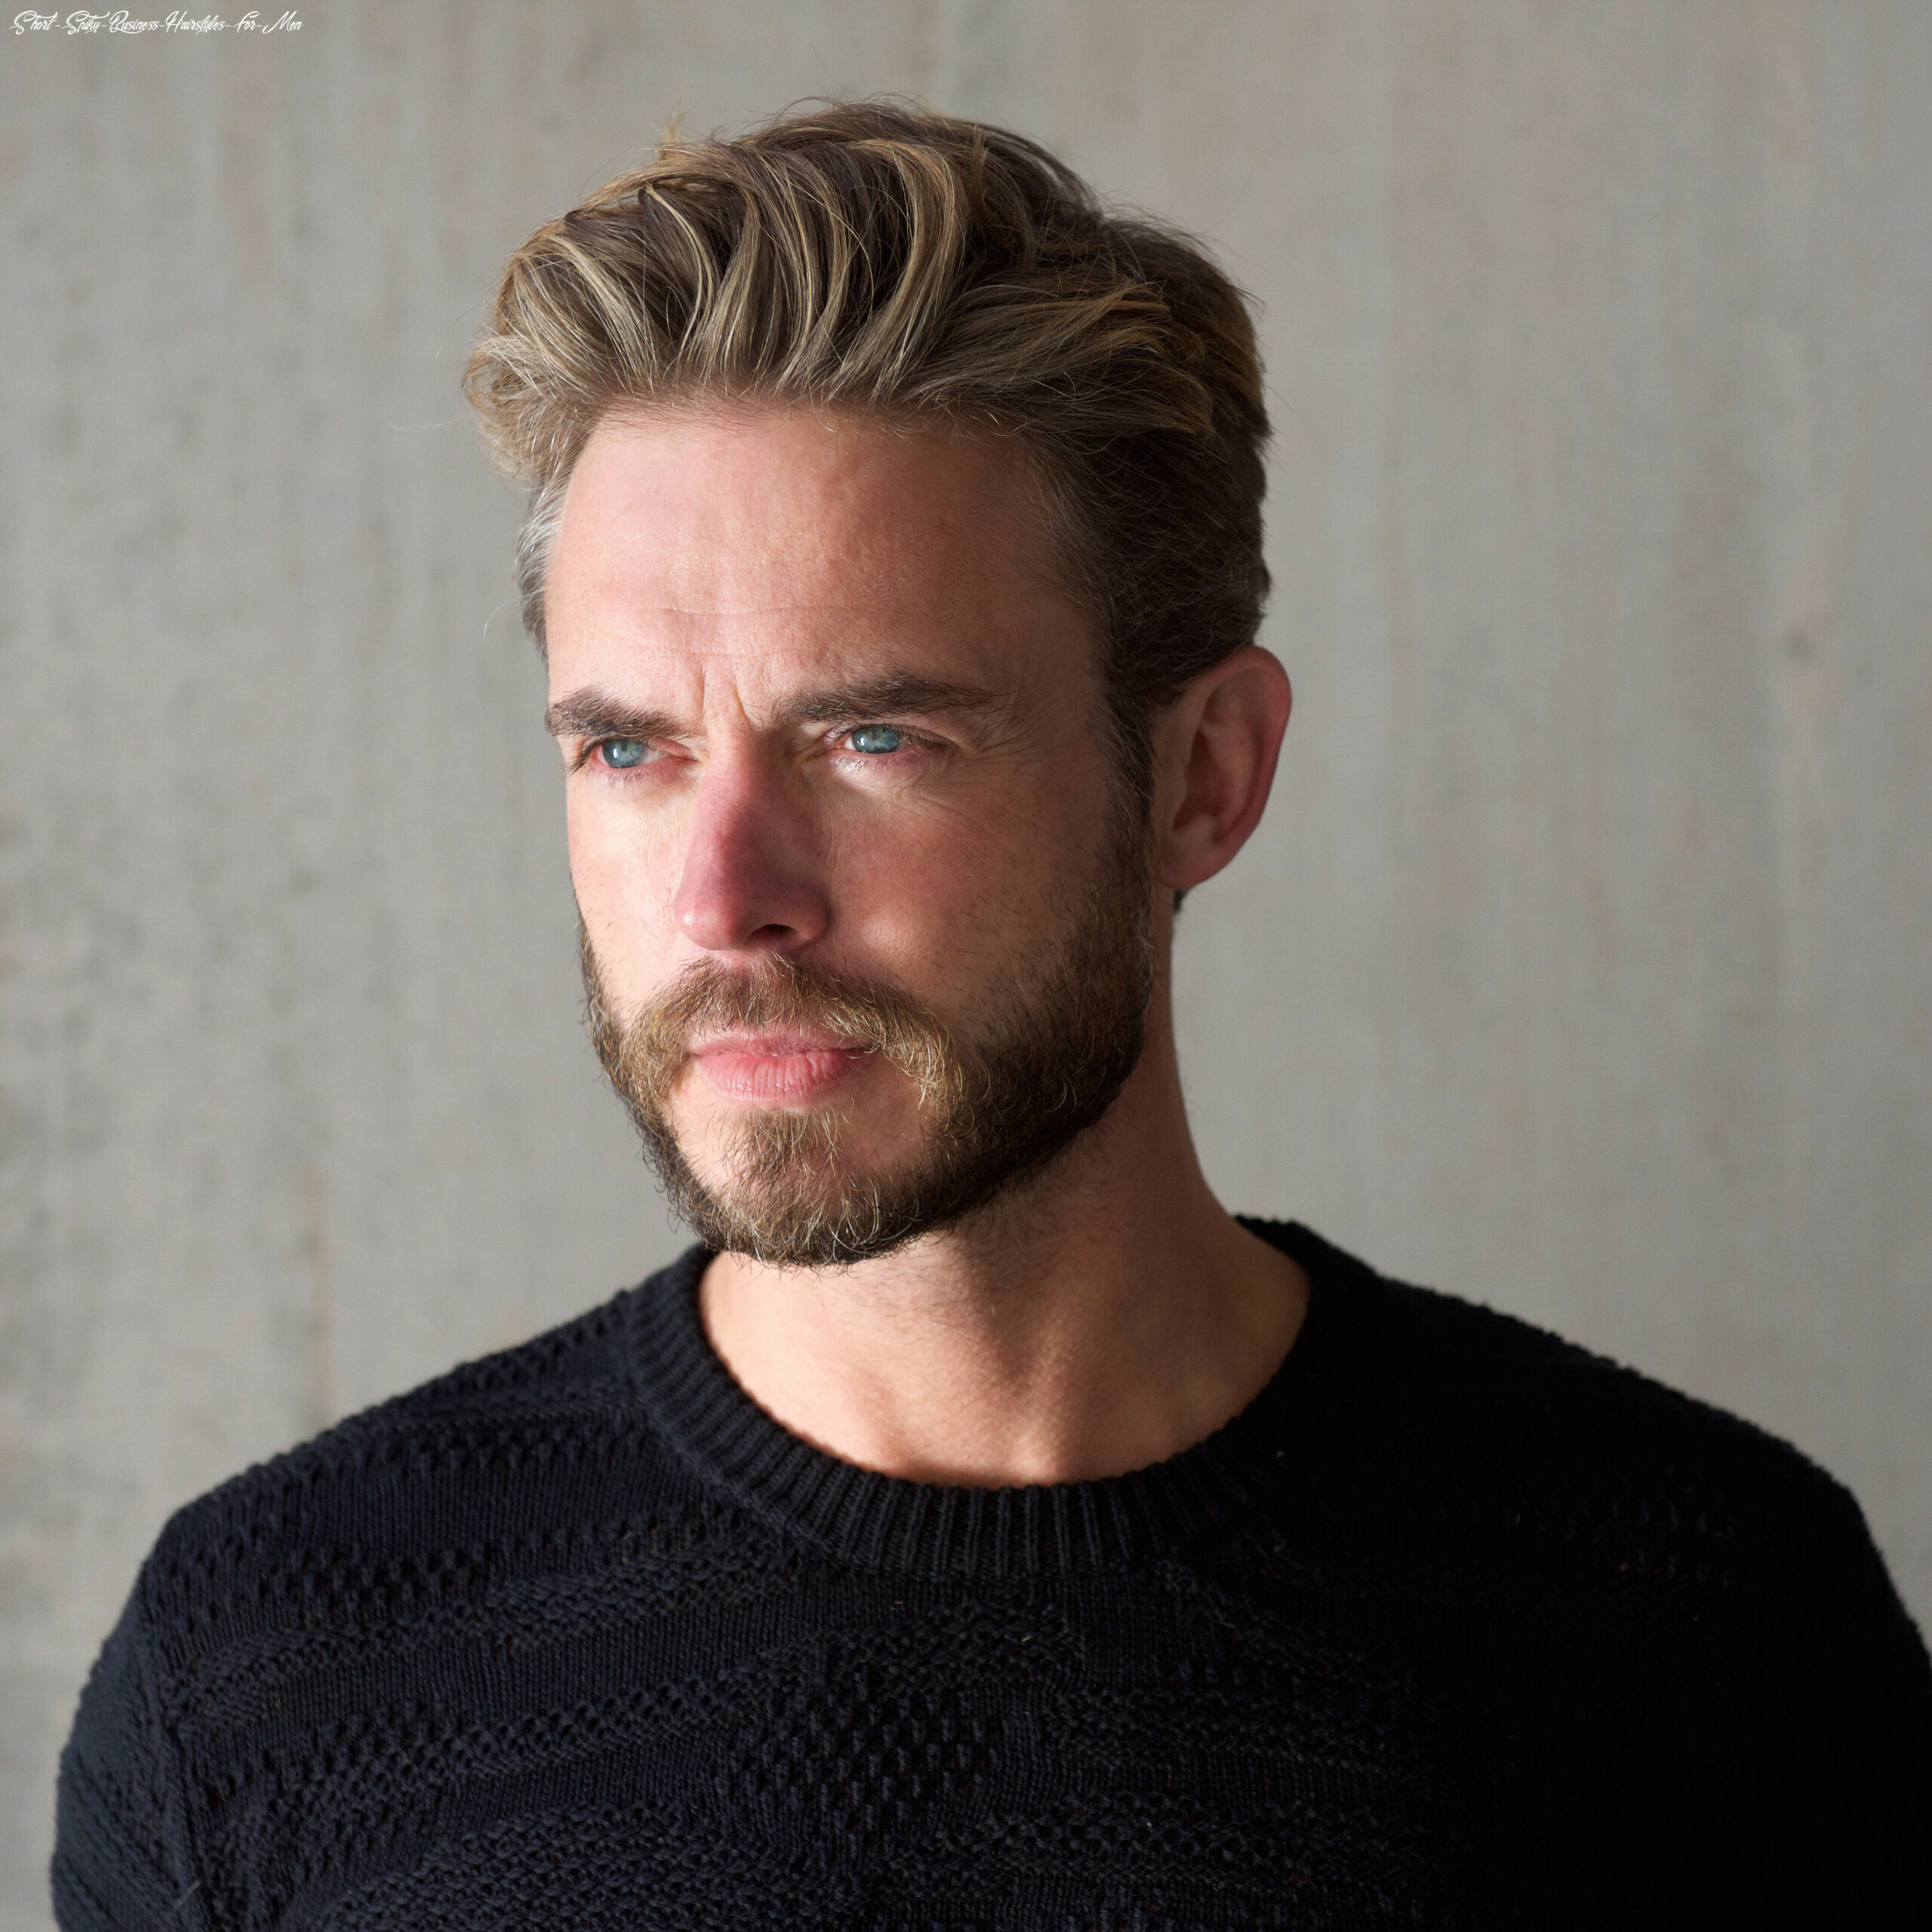 Top 10 business hairstyles for men short spiky business hairstyles for men